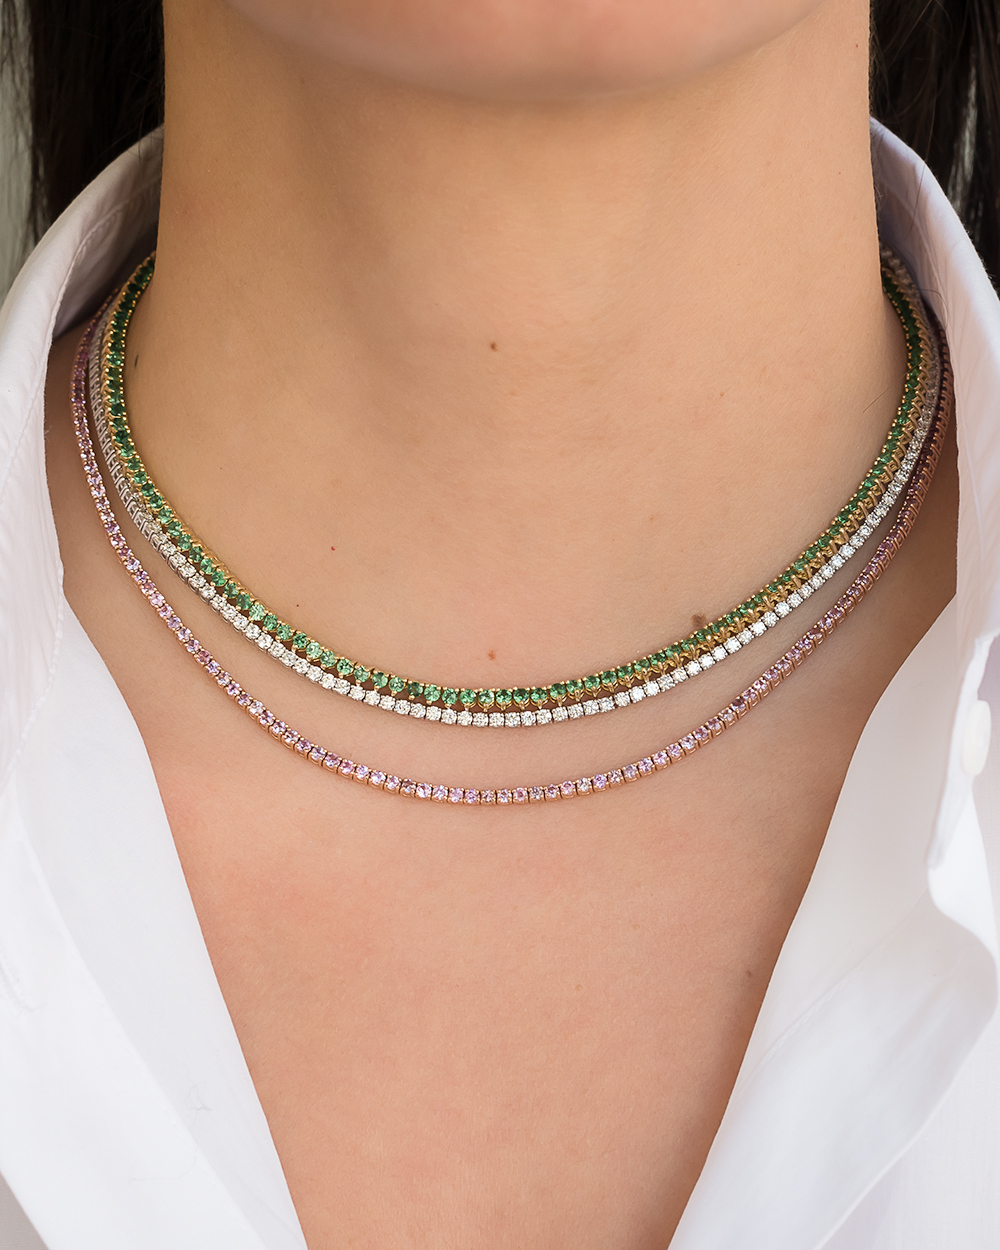 Pink Sapphire Tennis Necklace Zoe Lev Jewelry